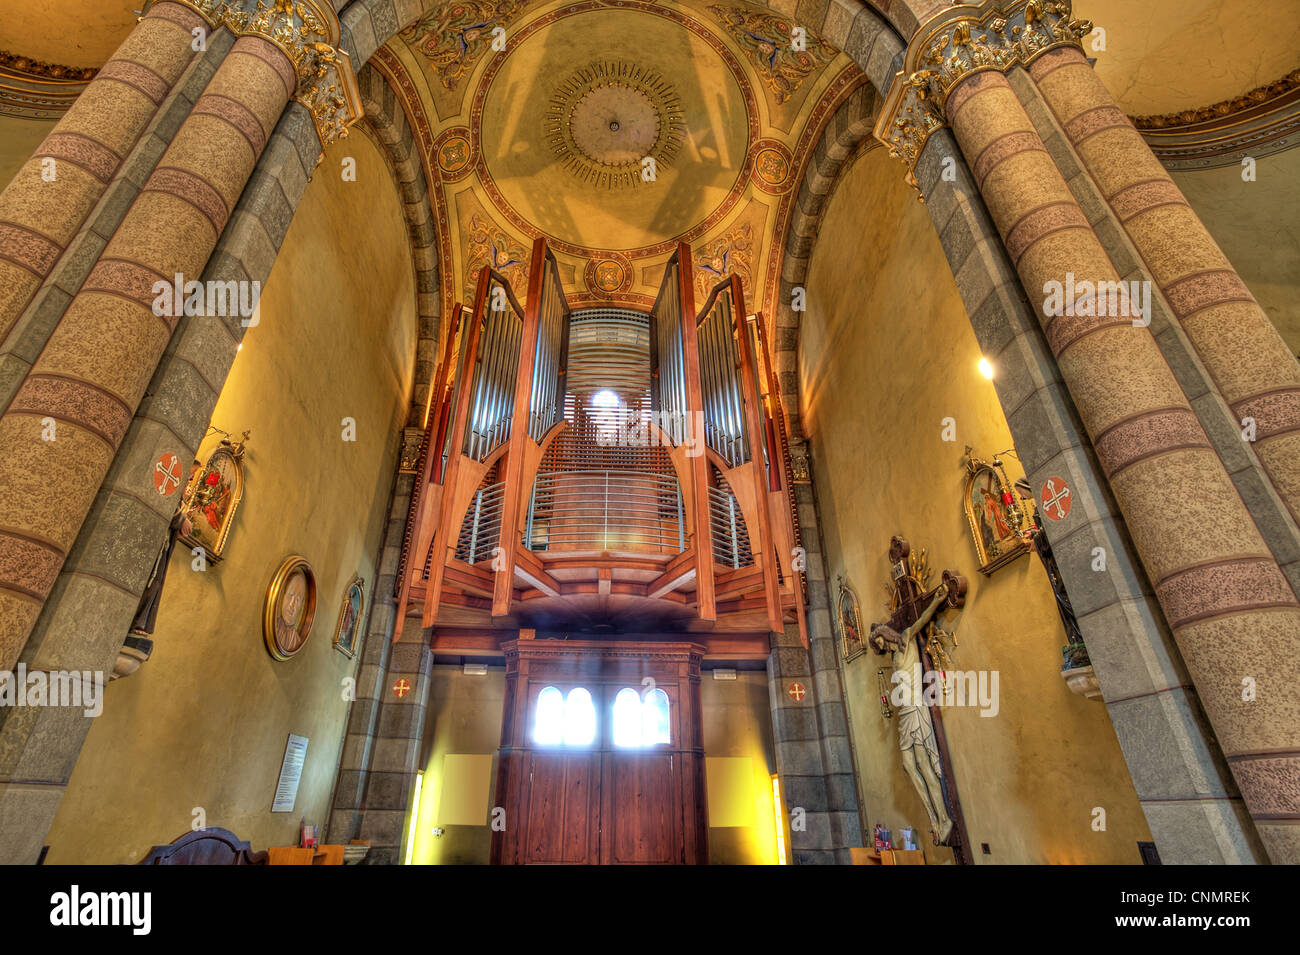 View on pipe organ inside Madonna Moretta catholic church in Alba, Northern Italy. - Stock Image